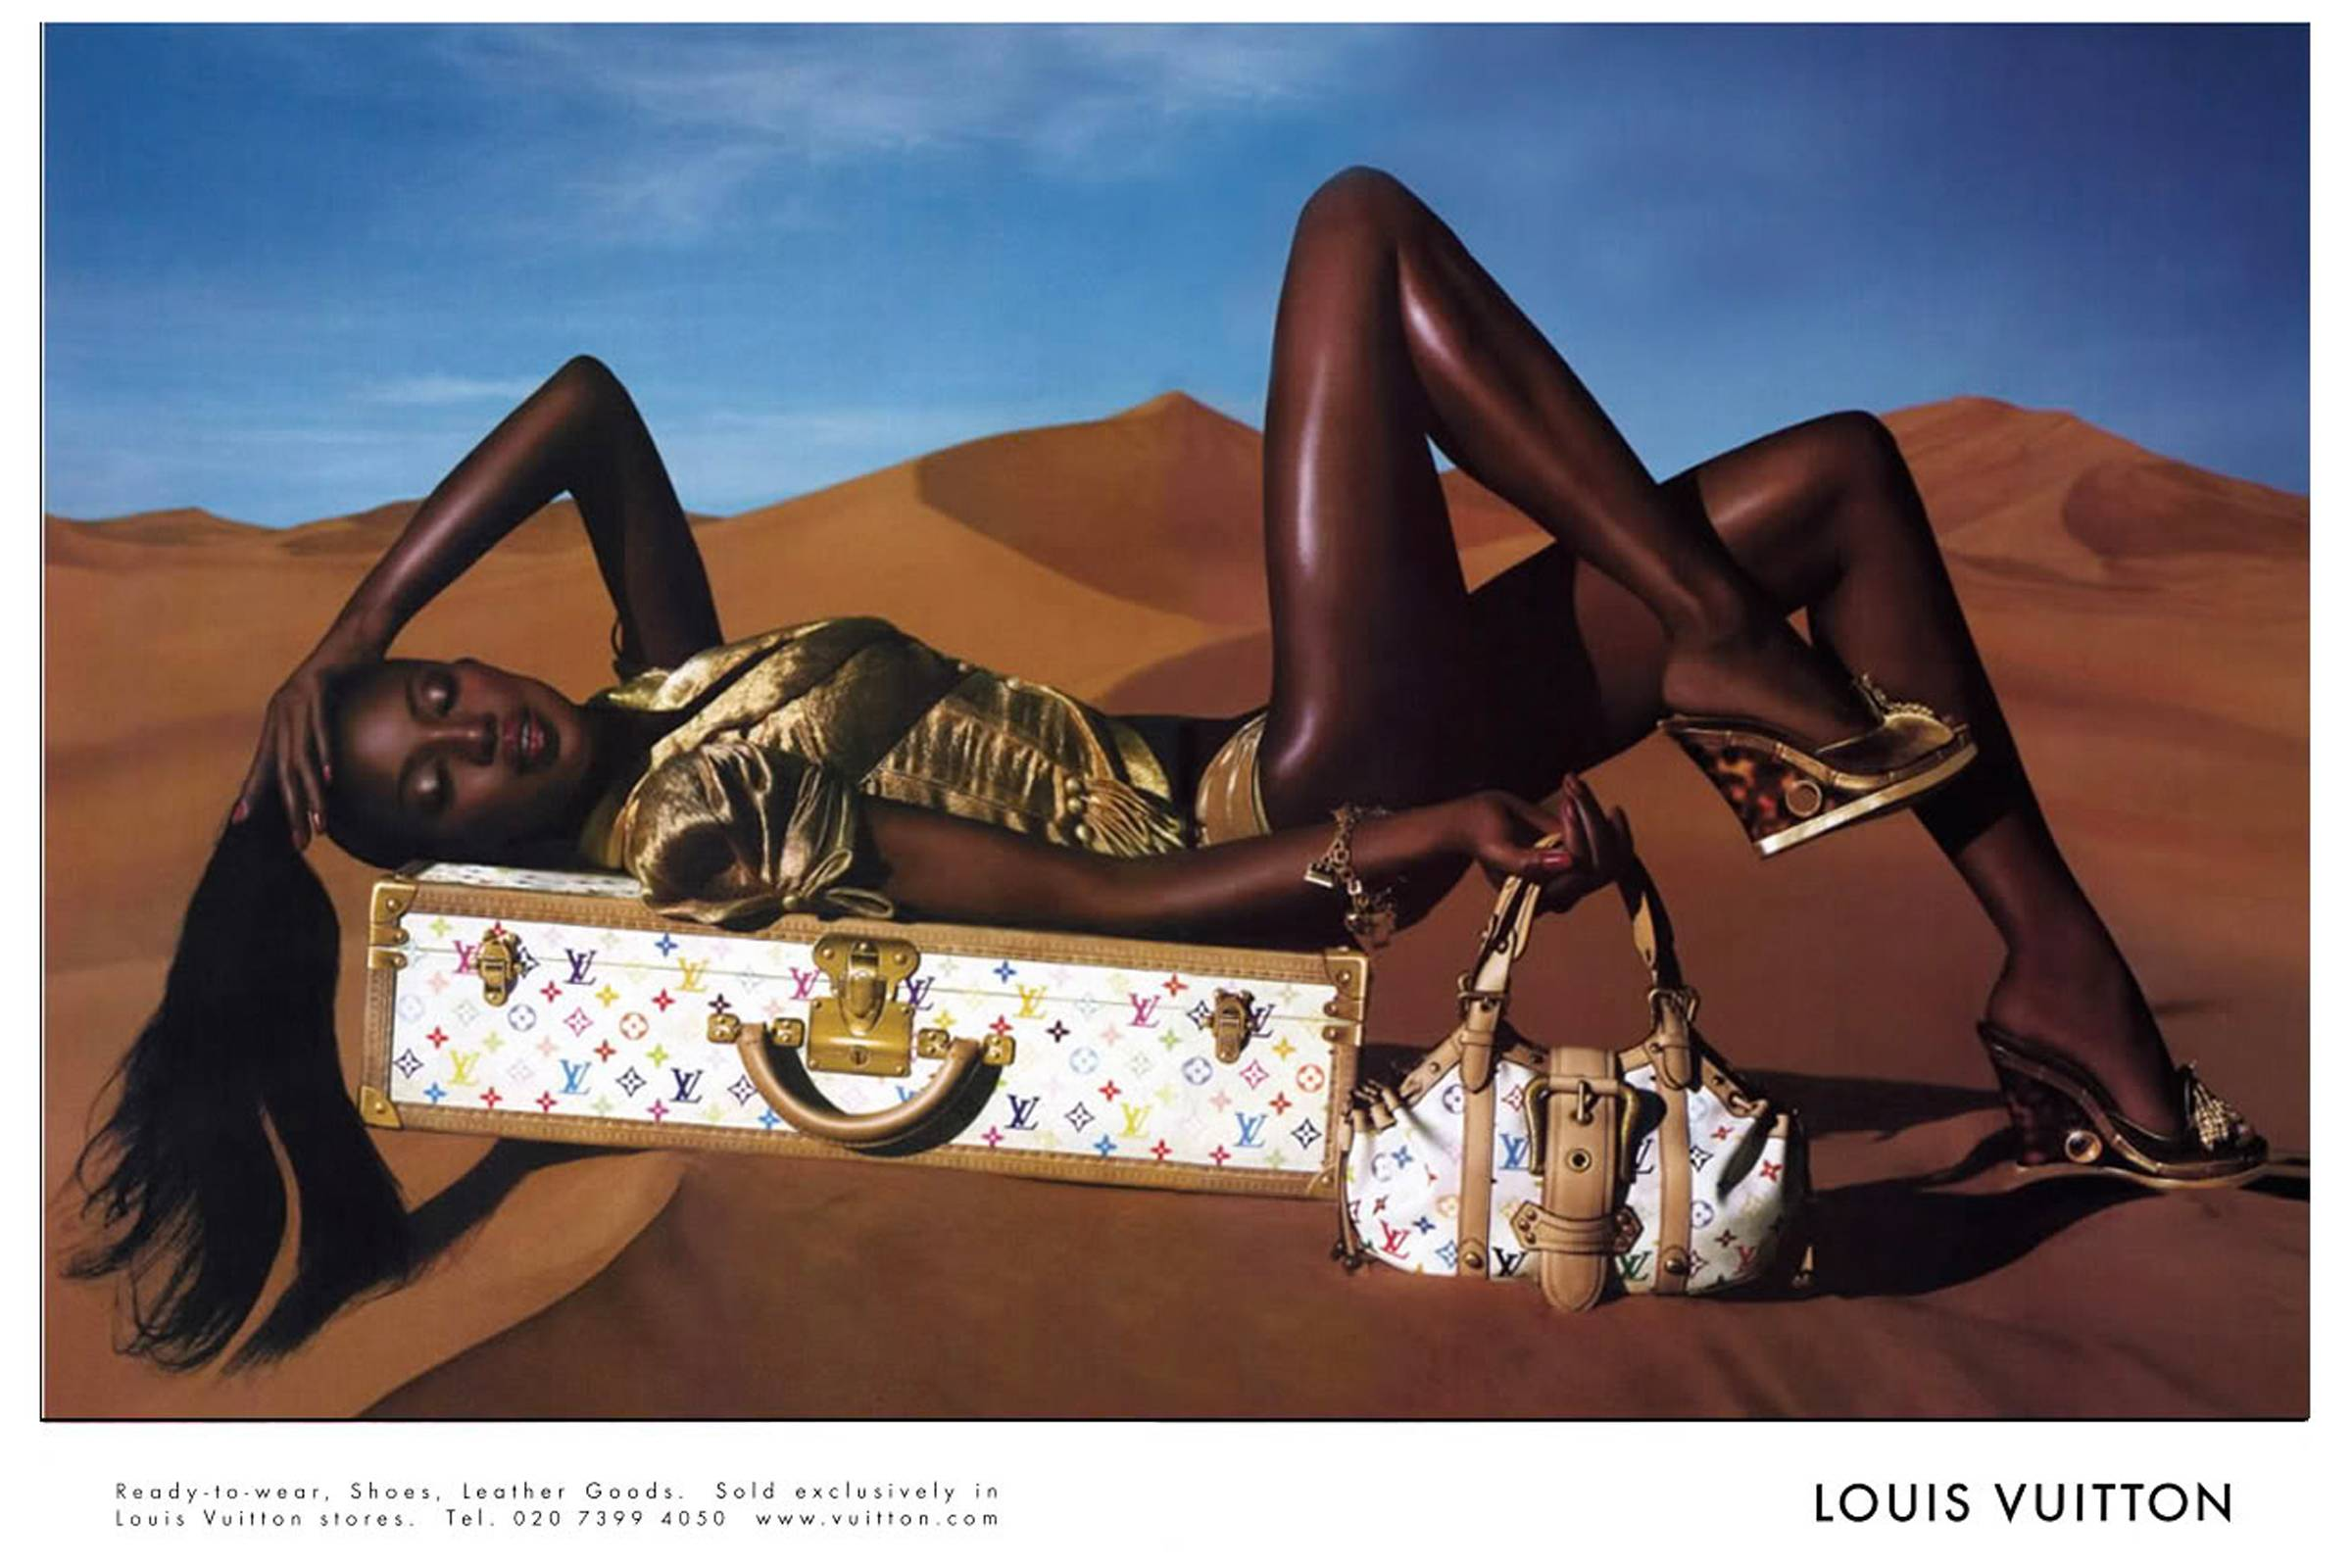 Louis Vuitton Spring/Summer 2004 Campaign by Marc Jacobs featuring Takashi Murakami collaboration